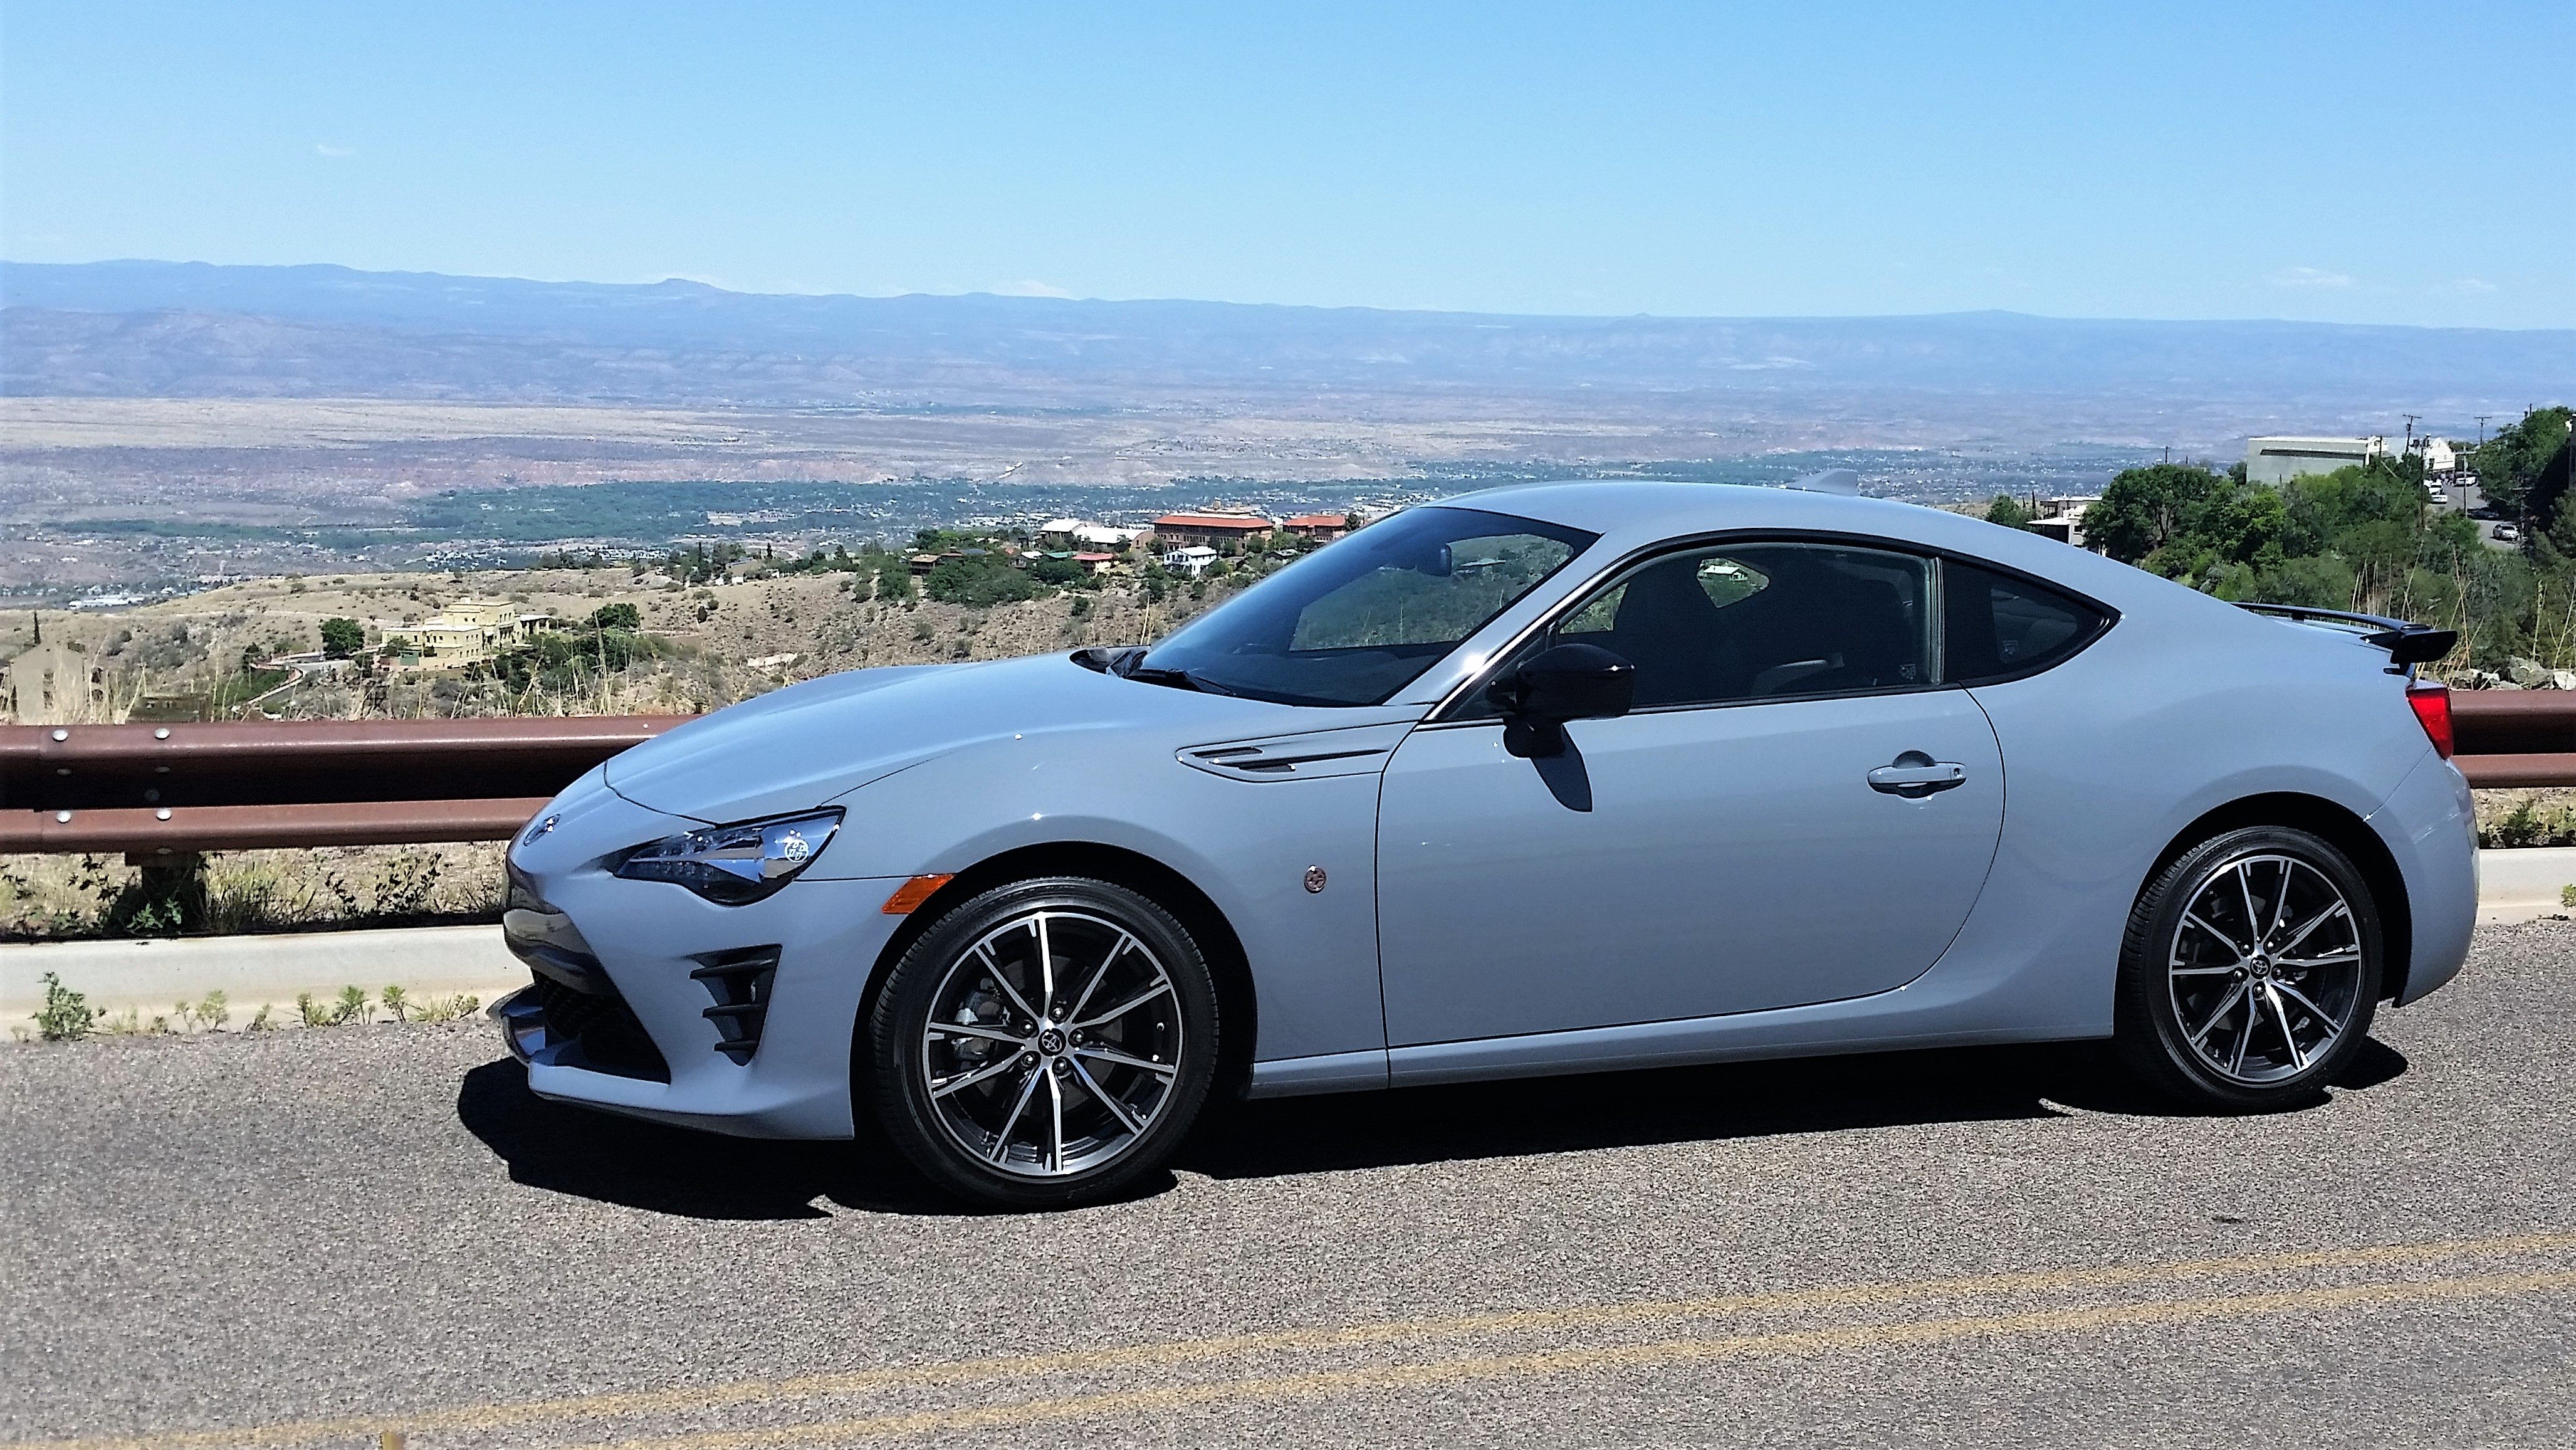 The Toyota 86 was perfectly suited for the Jerome road trip